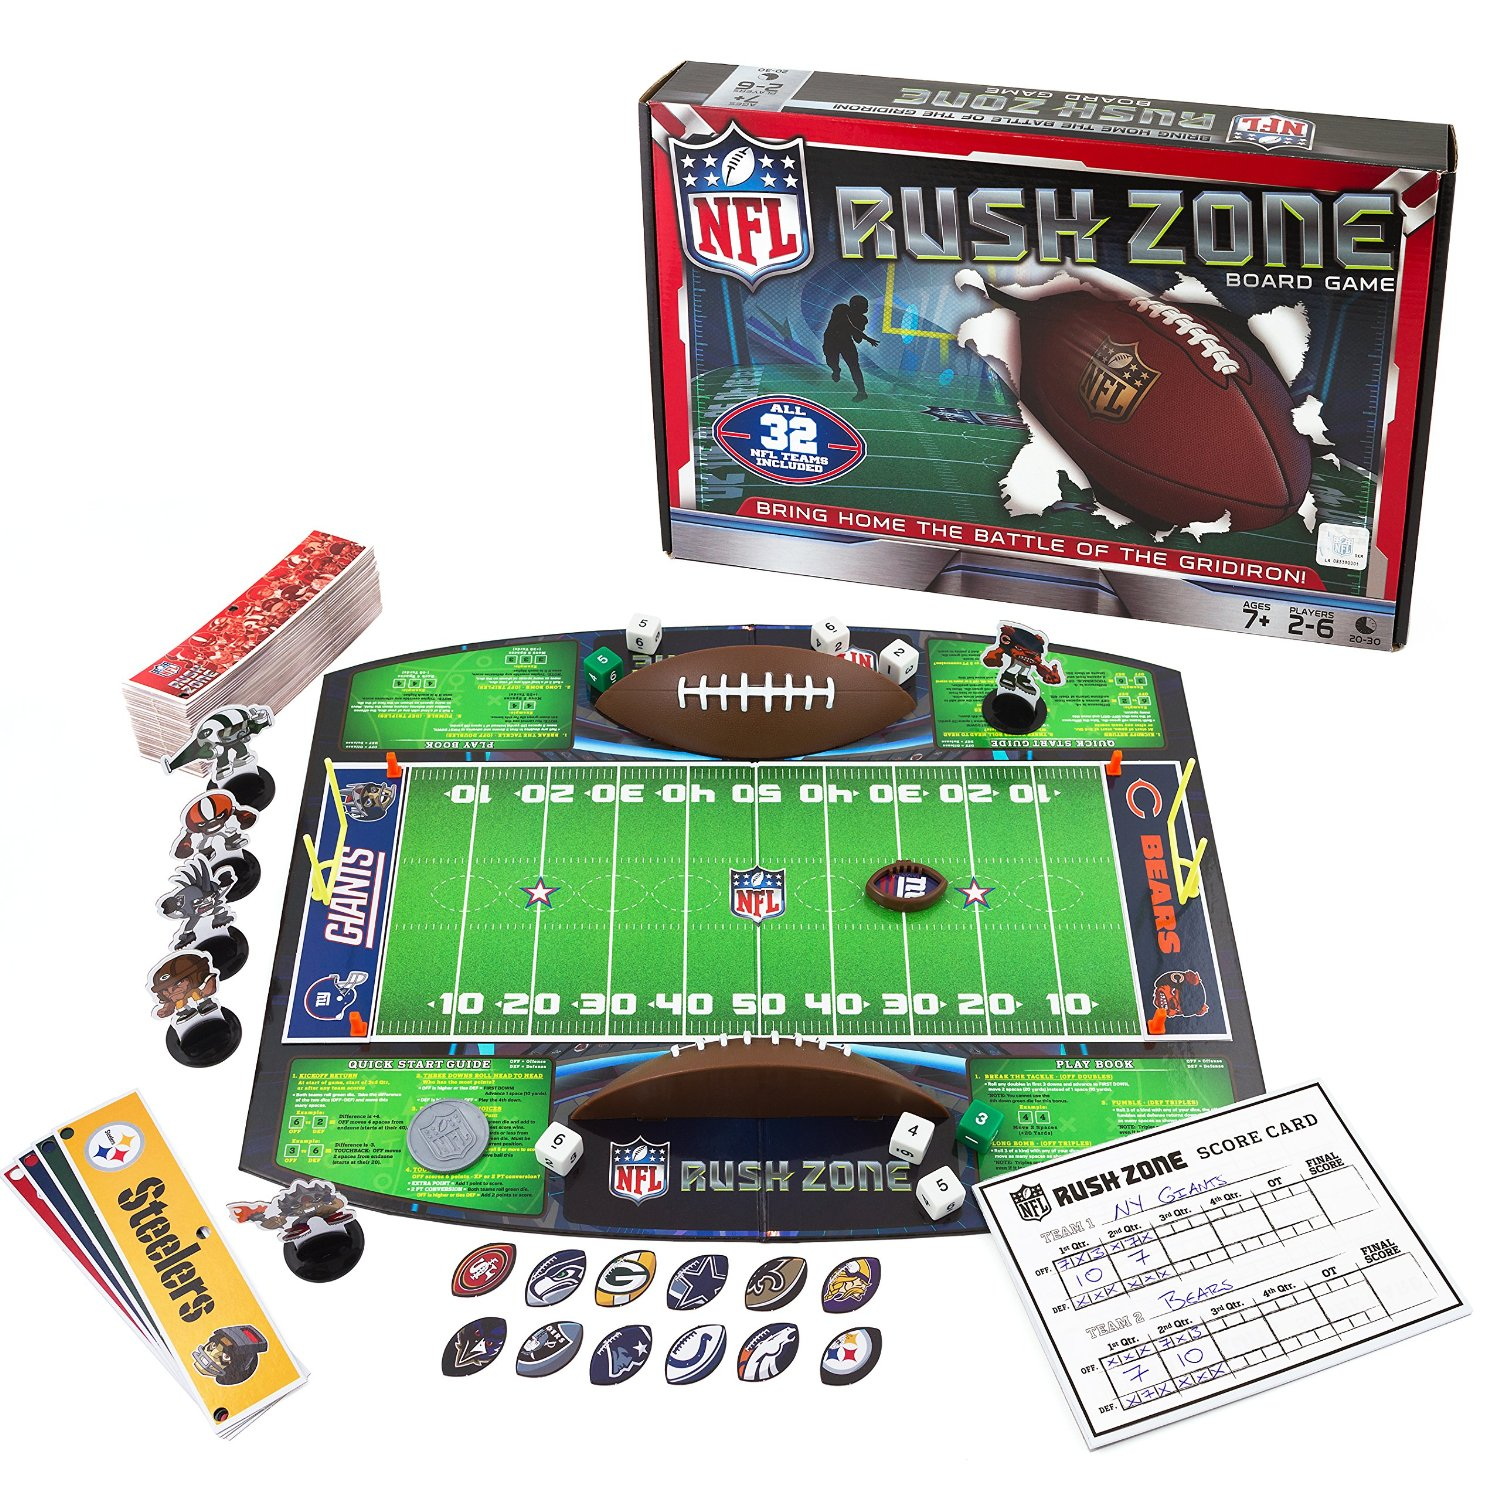 NFL Rush Zone GameChoose your favorite NFL team and battle it out against all rivals, when you play the NFL... by